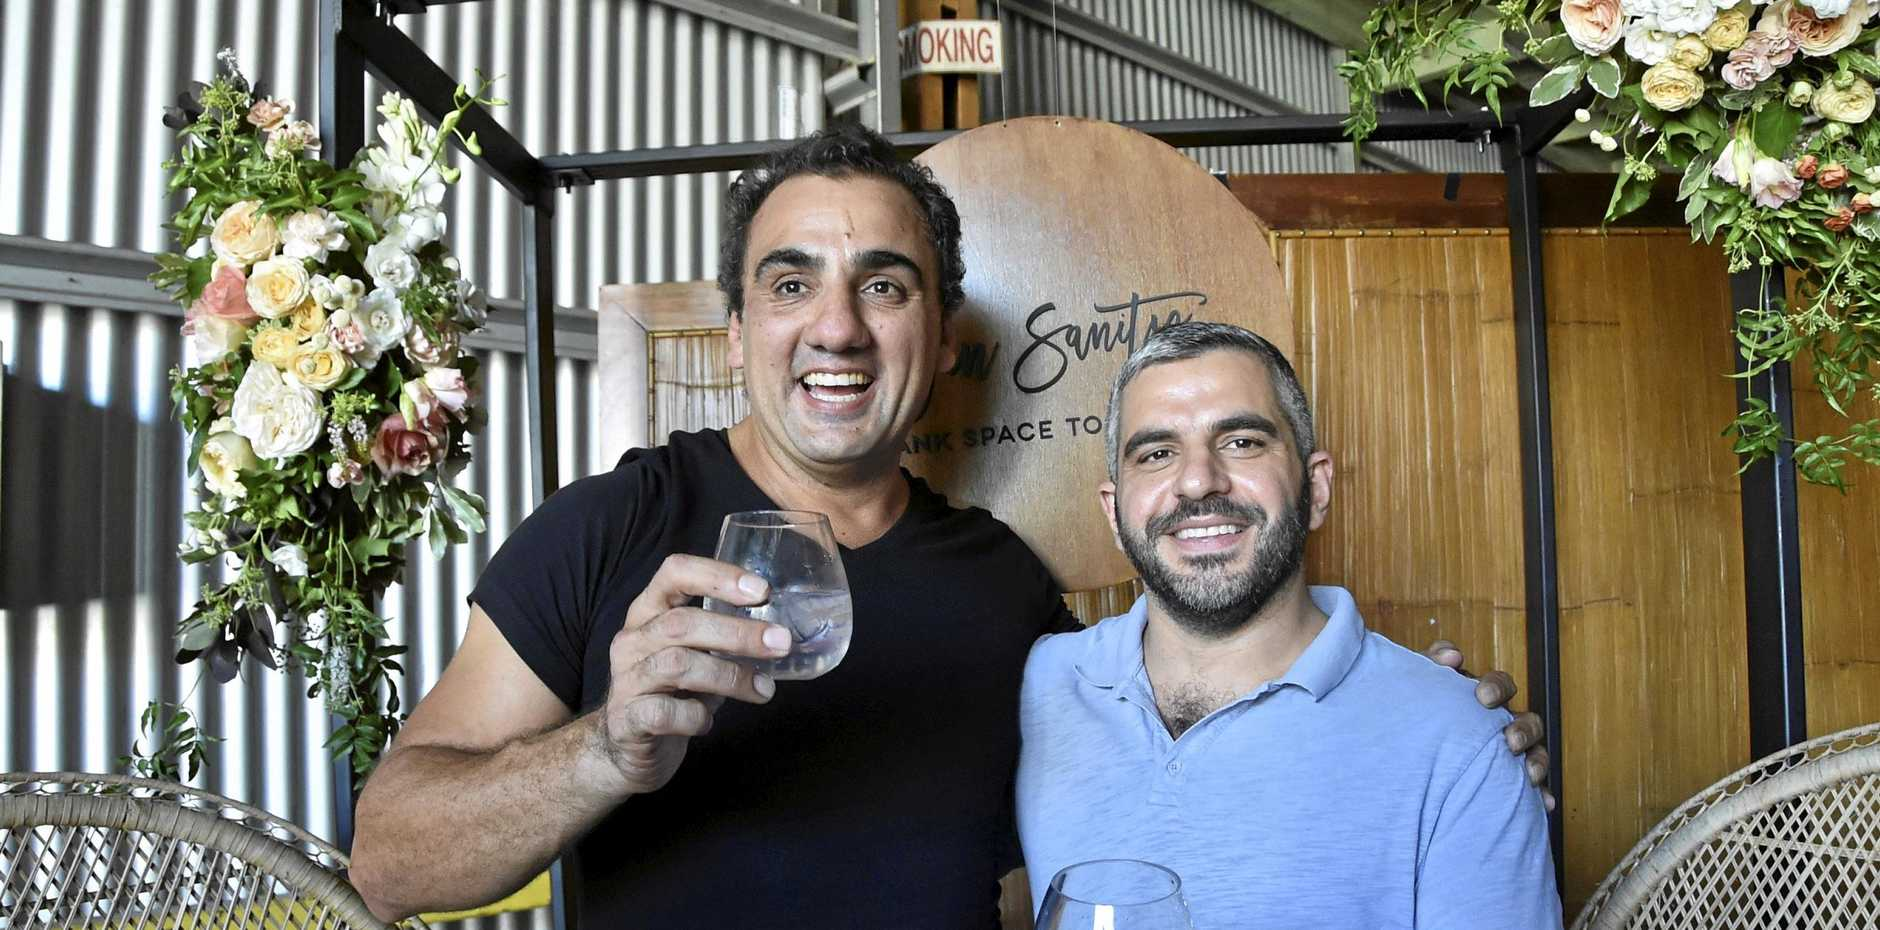 TOP TIPPLE: Getting in the spirit at last year's Gin Sanity festival are publican Phil Coorey (left) and Johnny Moubarak.